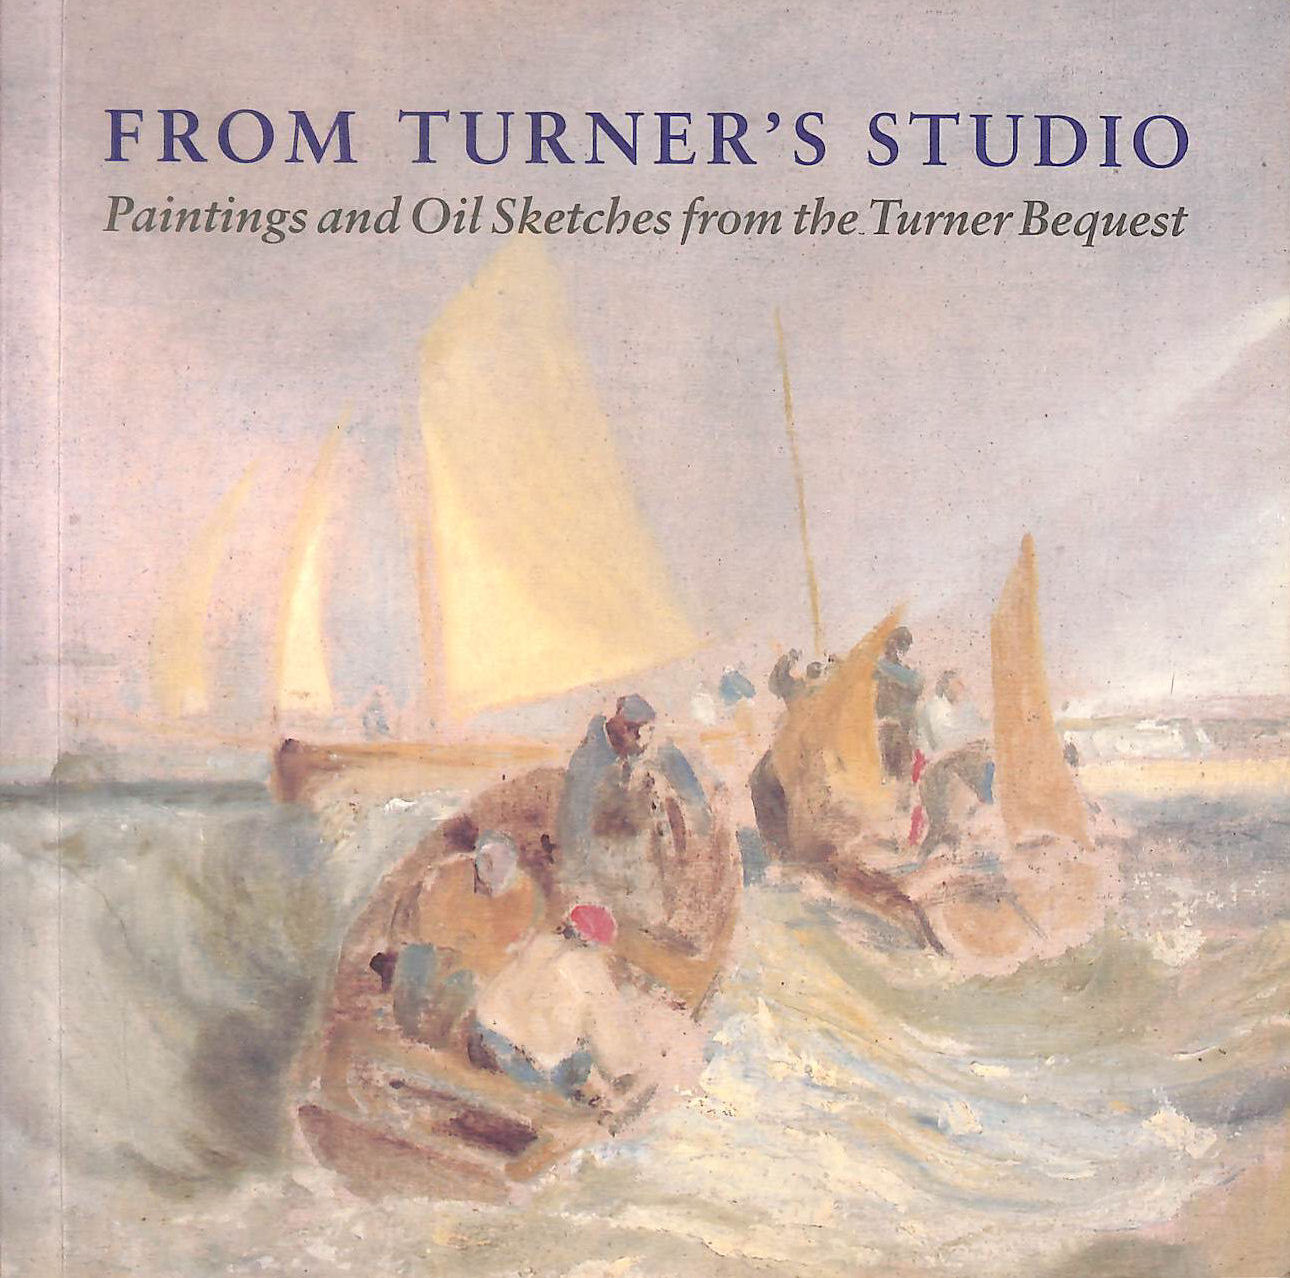 Image for From Turner's Studio: Paintings and Oil Sketches from the Turner Bequest